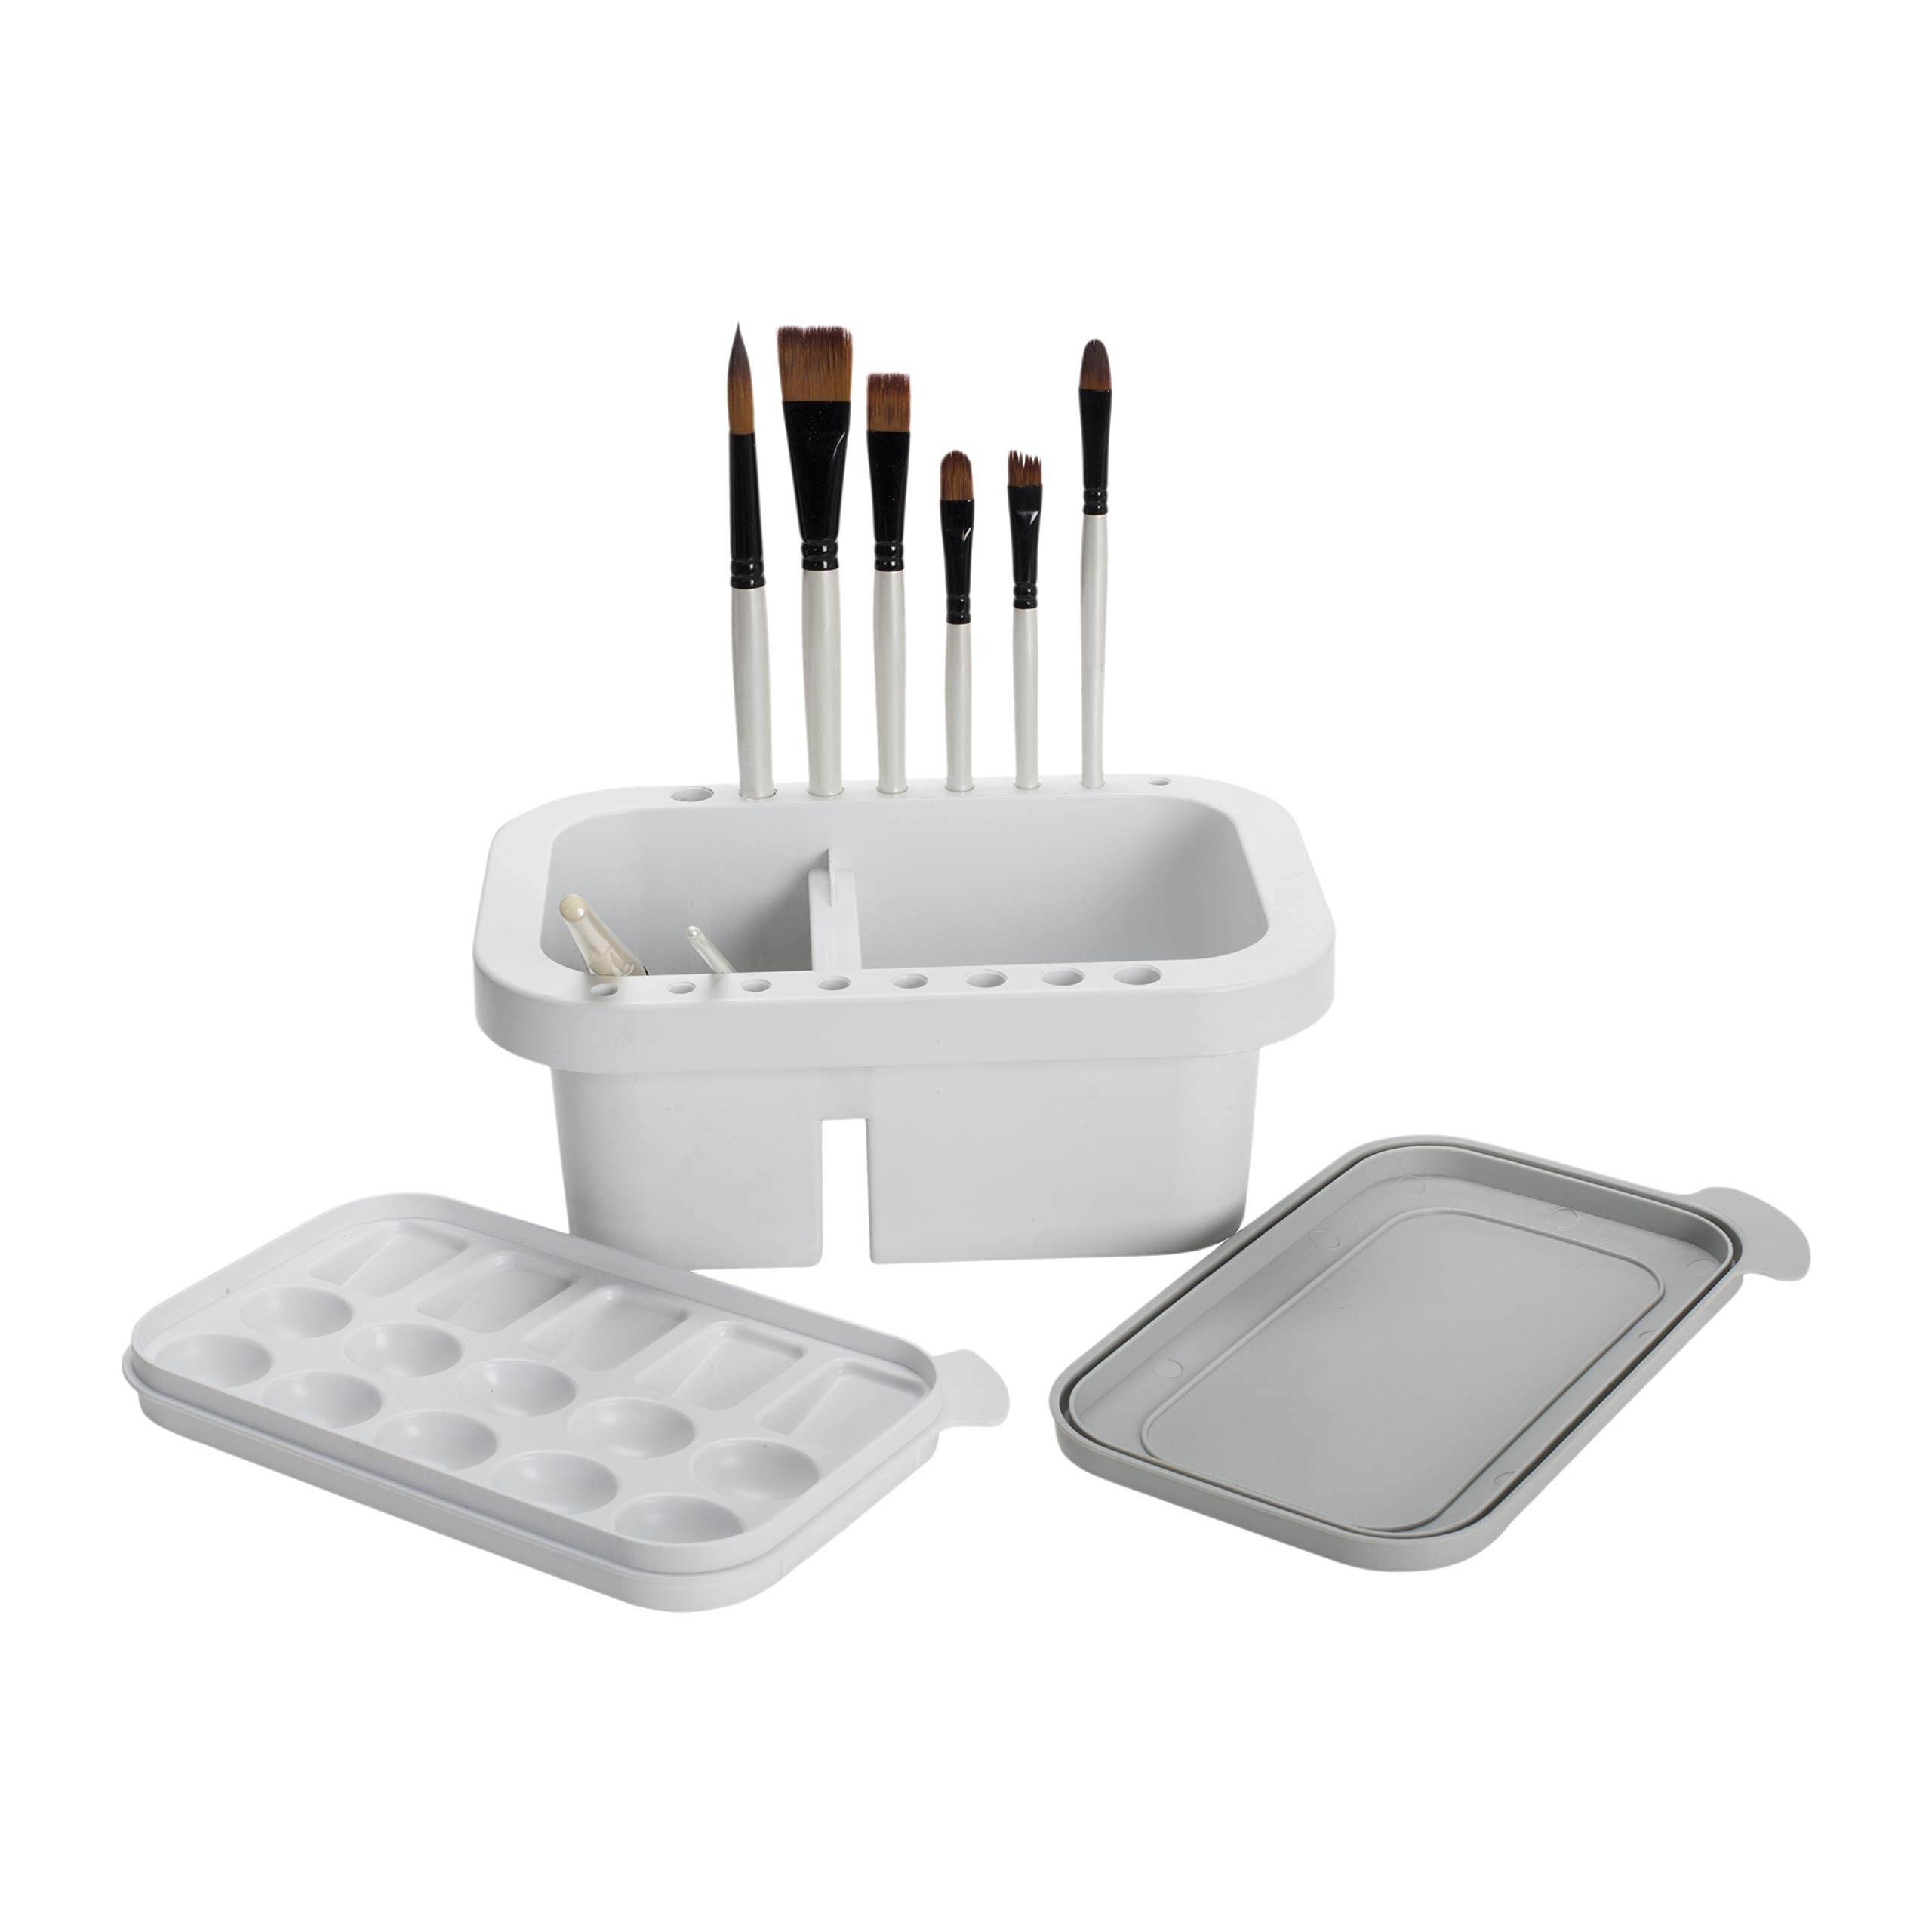 """Jerry's Artarama Artist Brush Washer Multi-Use Includes Paintbrush Rest & Stand, Cleaning & Washing Basin, Waterbucket, and Painting Palette with Lid - [9""""L x 6""""W x 4""""D]"""